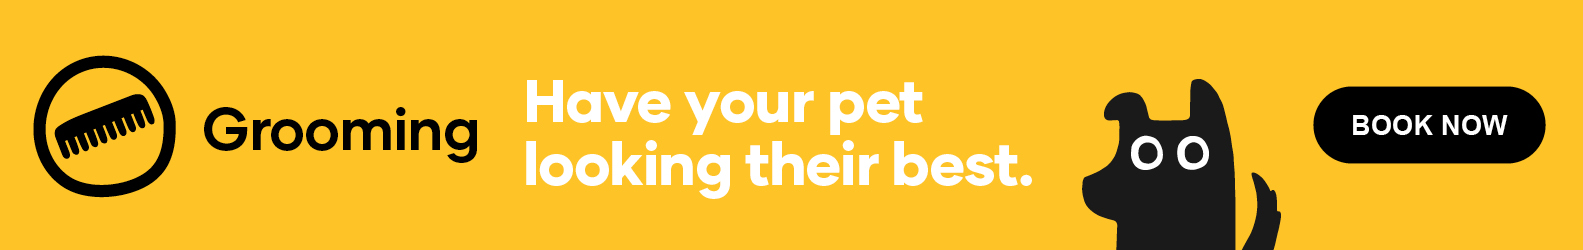 Have your pet looking their best.